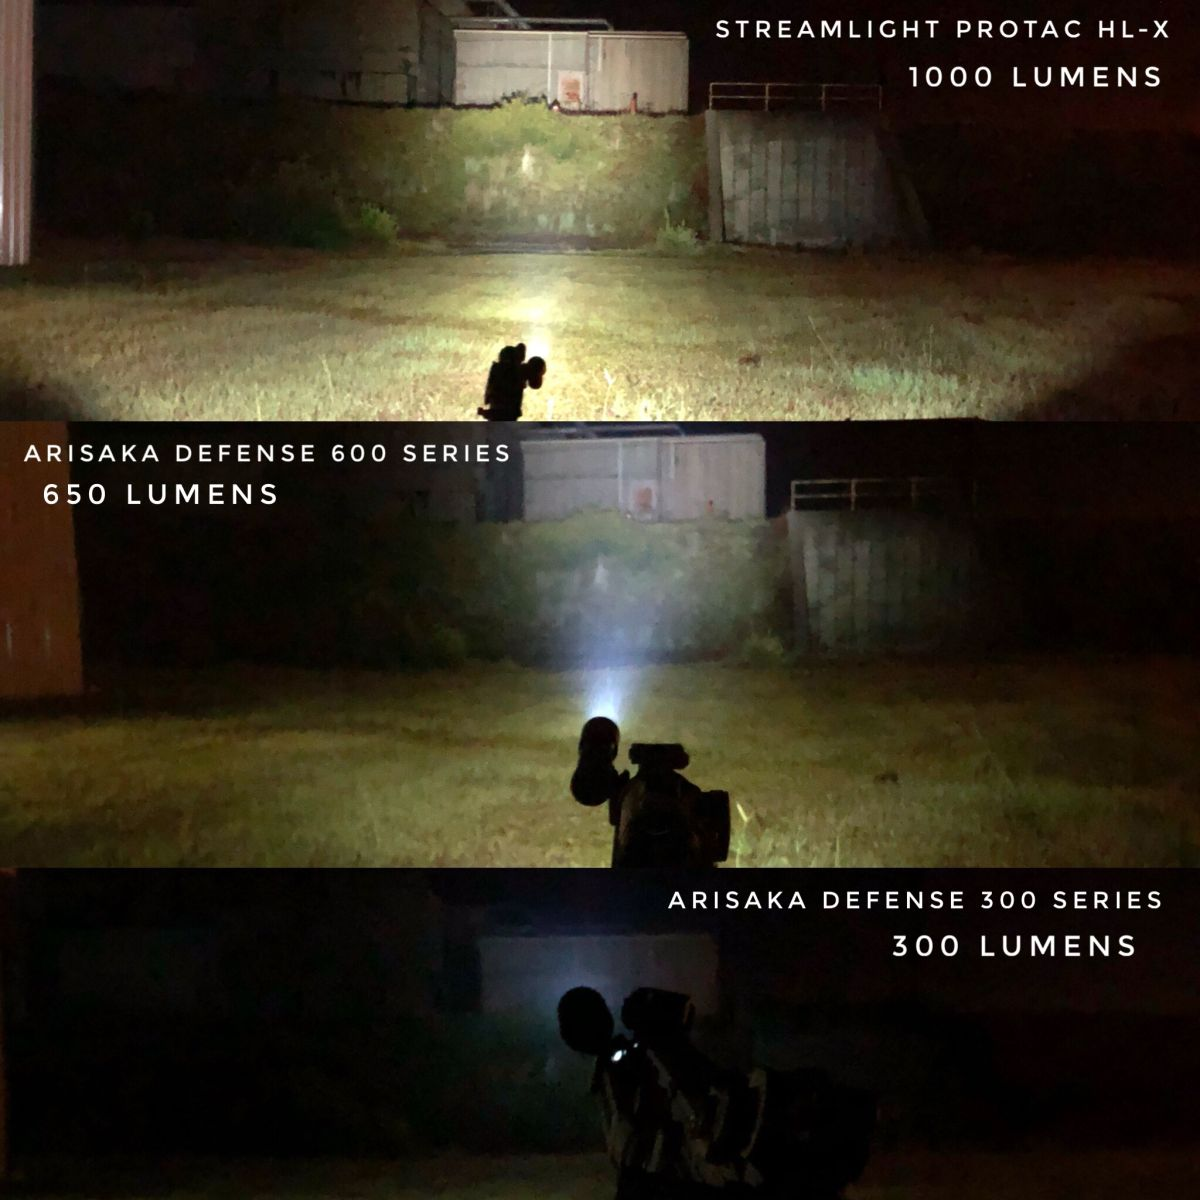 A comparison of all three lights shown at the same object from the same distance.